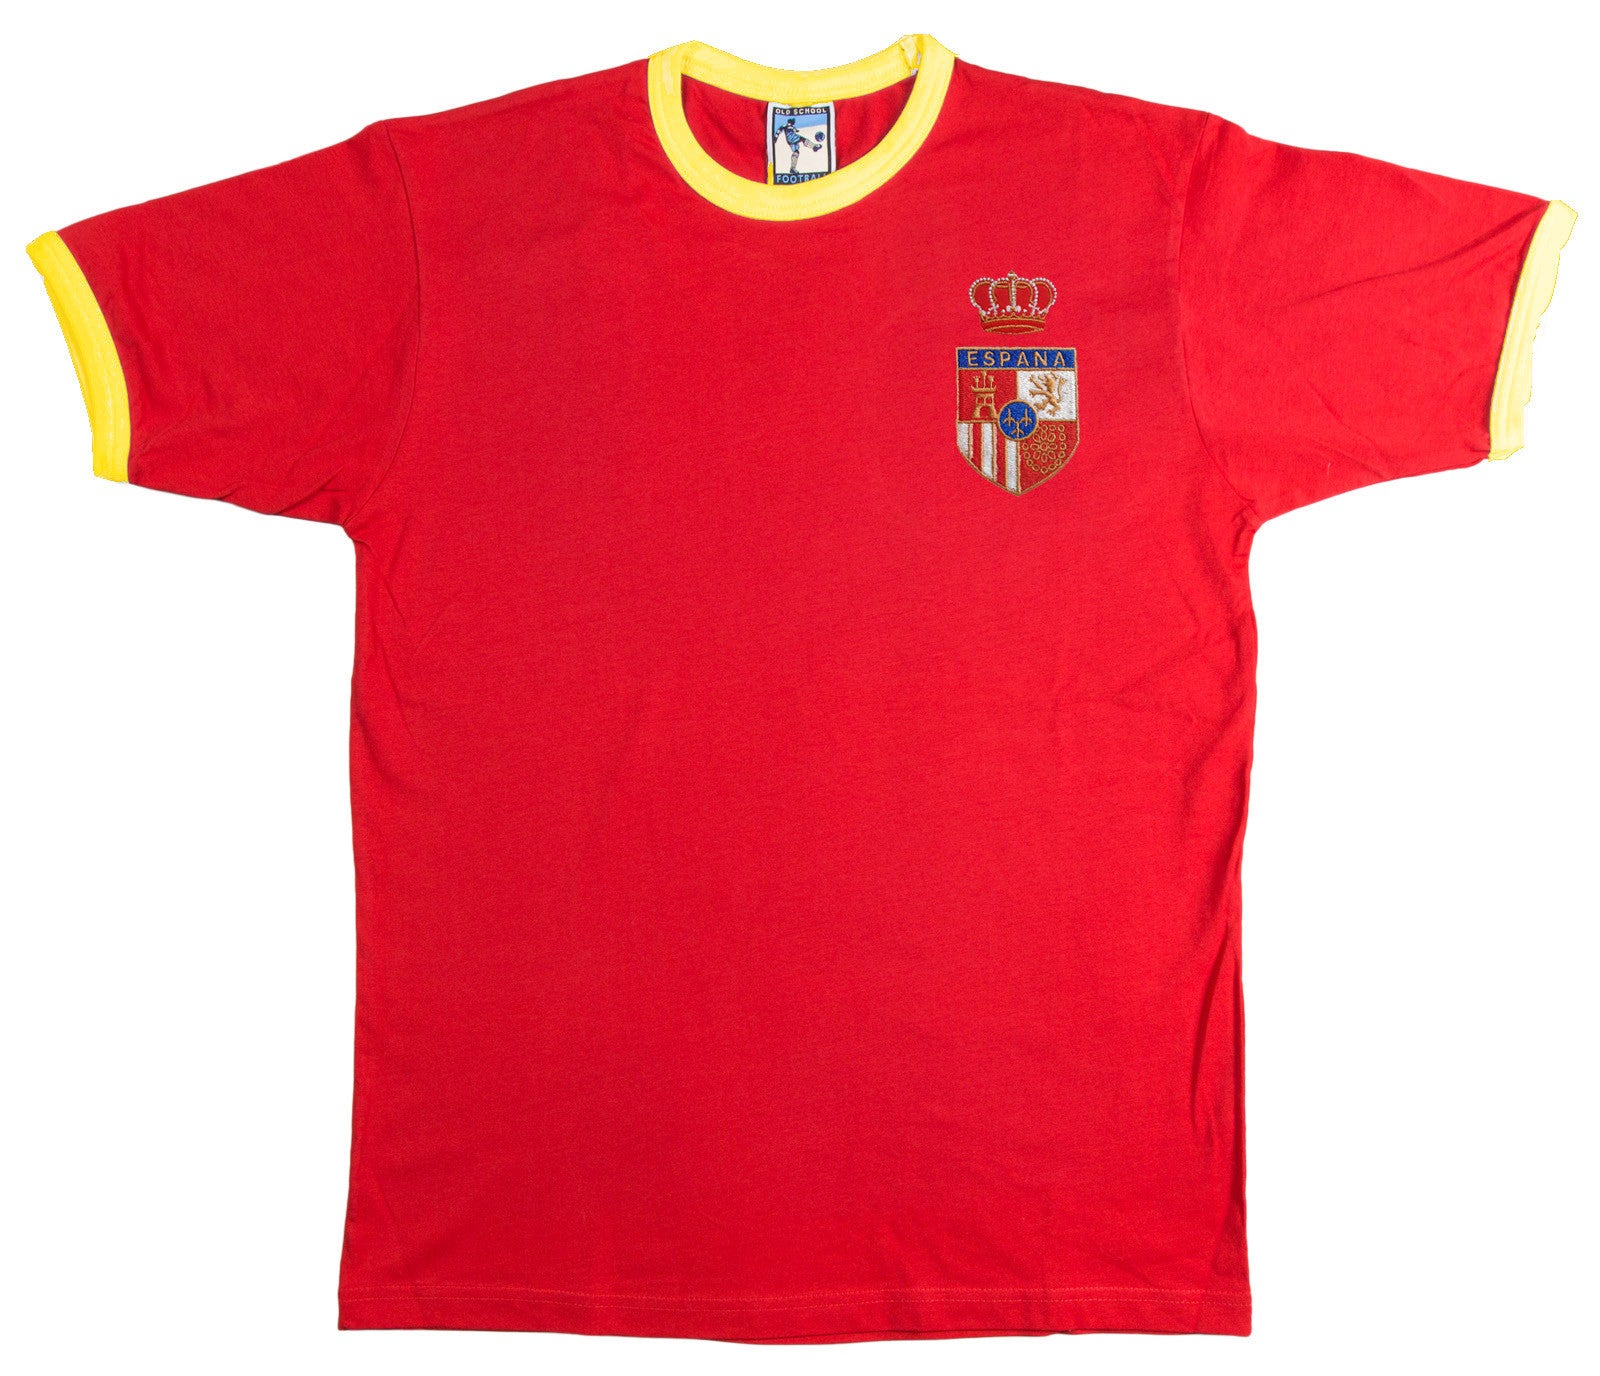 Spain Retro Football T Shirt 1970s - T-shirt